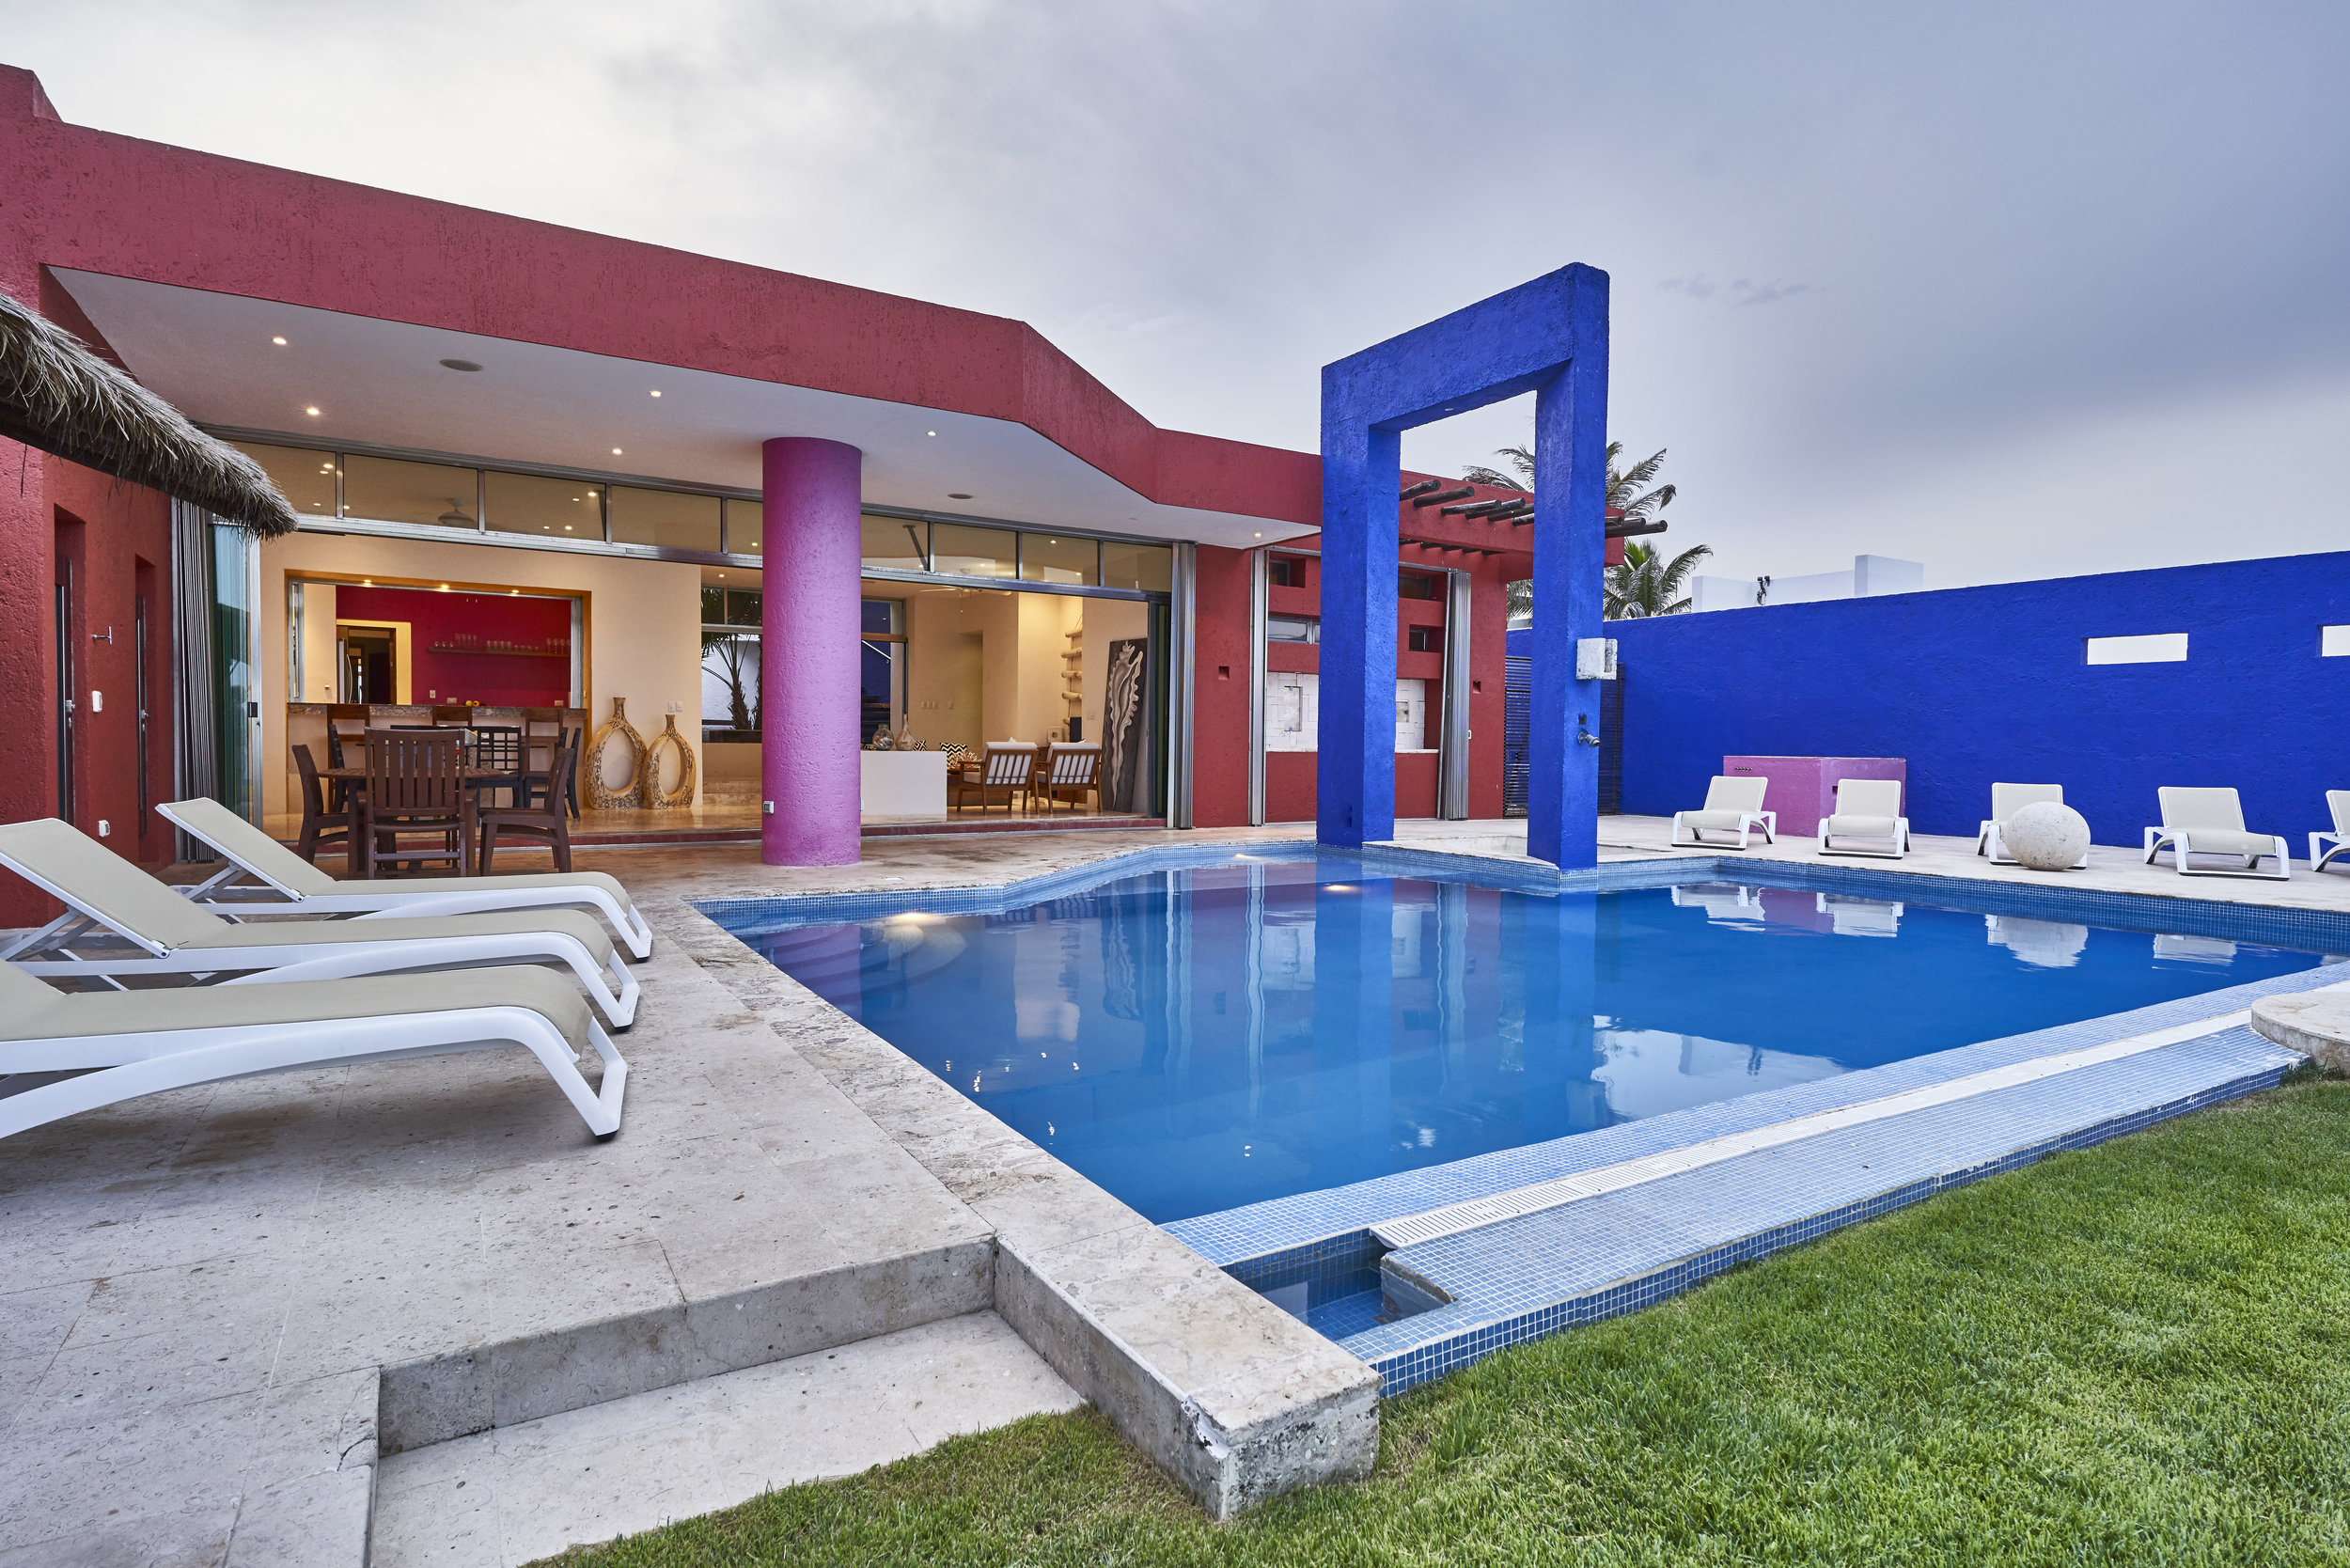 CasaZama_PoolTerrace_09.jpg